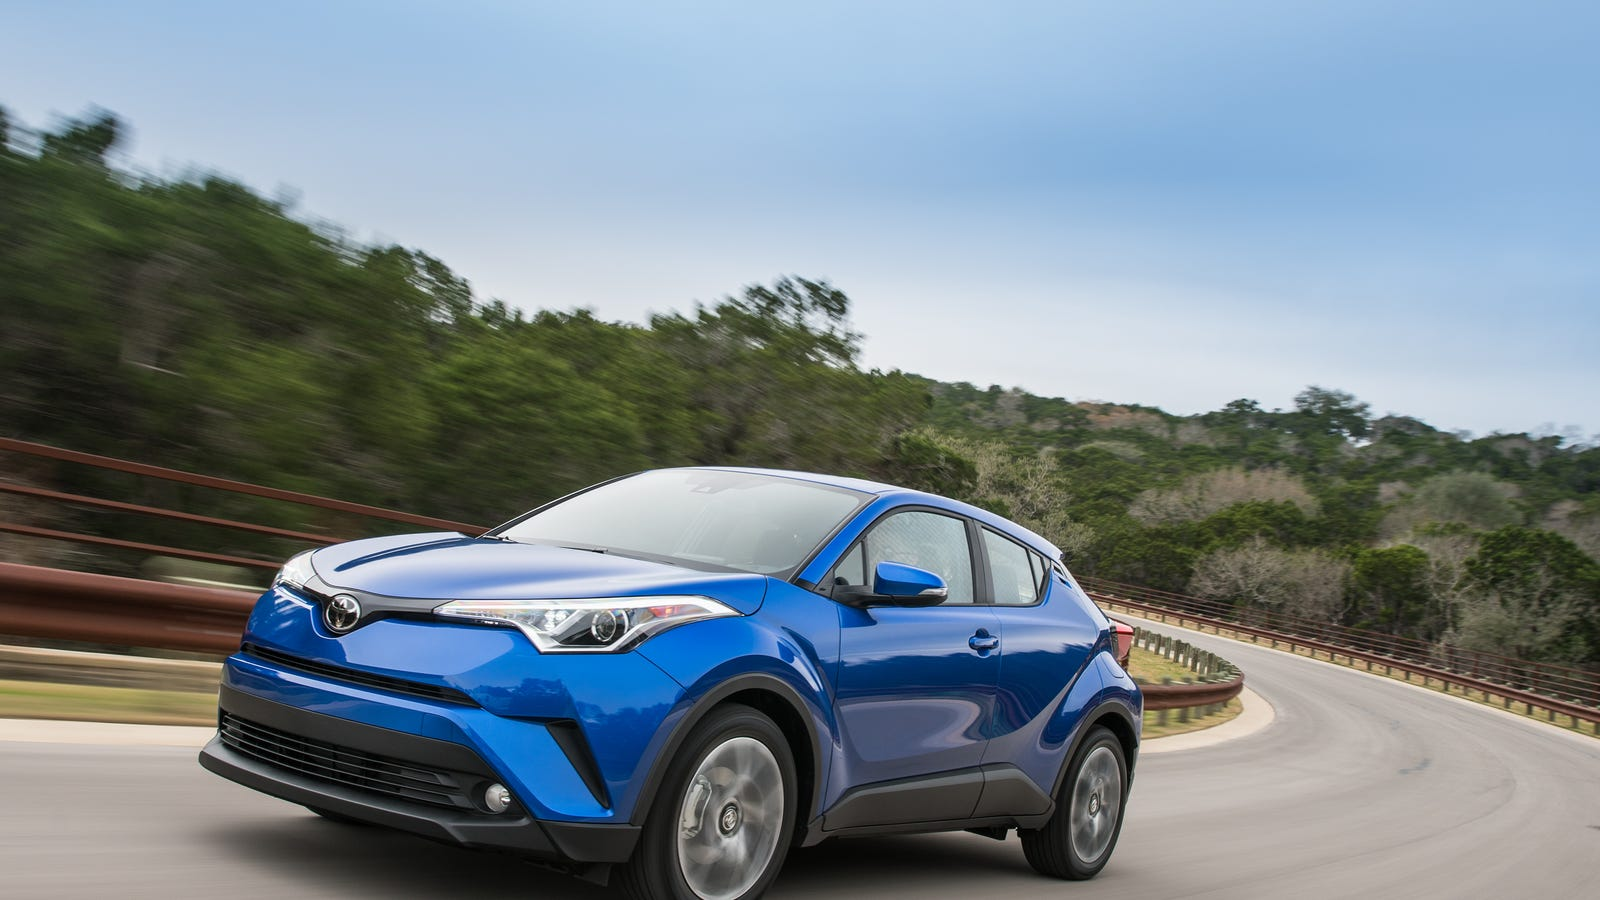 Toyota Recalls Over 68,000 C-HRs and PHEV Priuses For Faulty Electronics